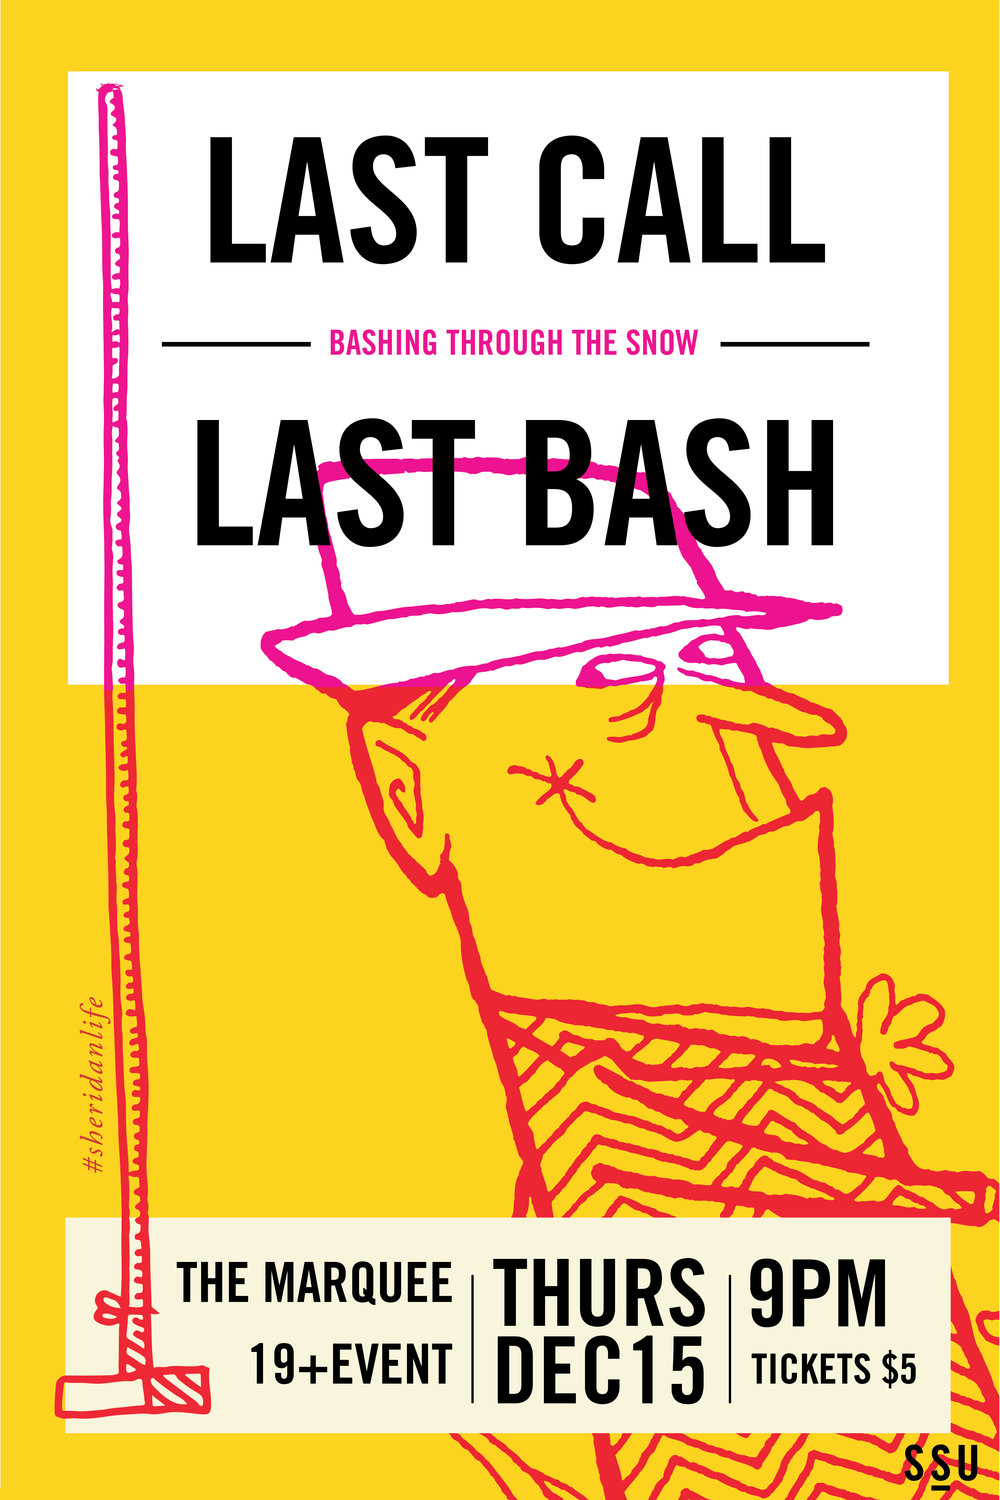 Dec15LastCallLastBash_tv-01-01.jpg